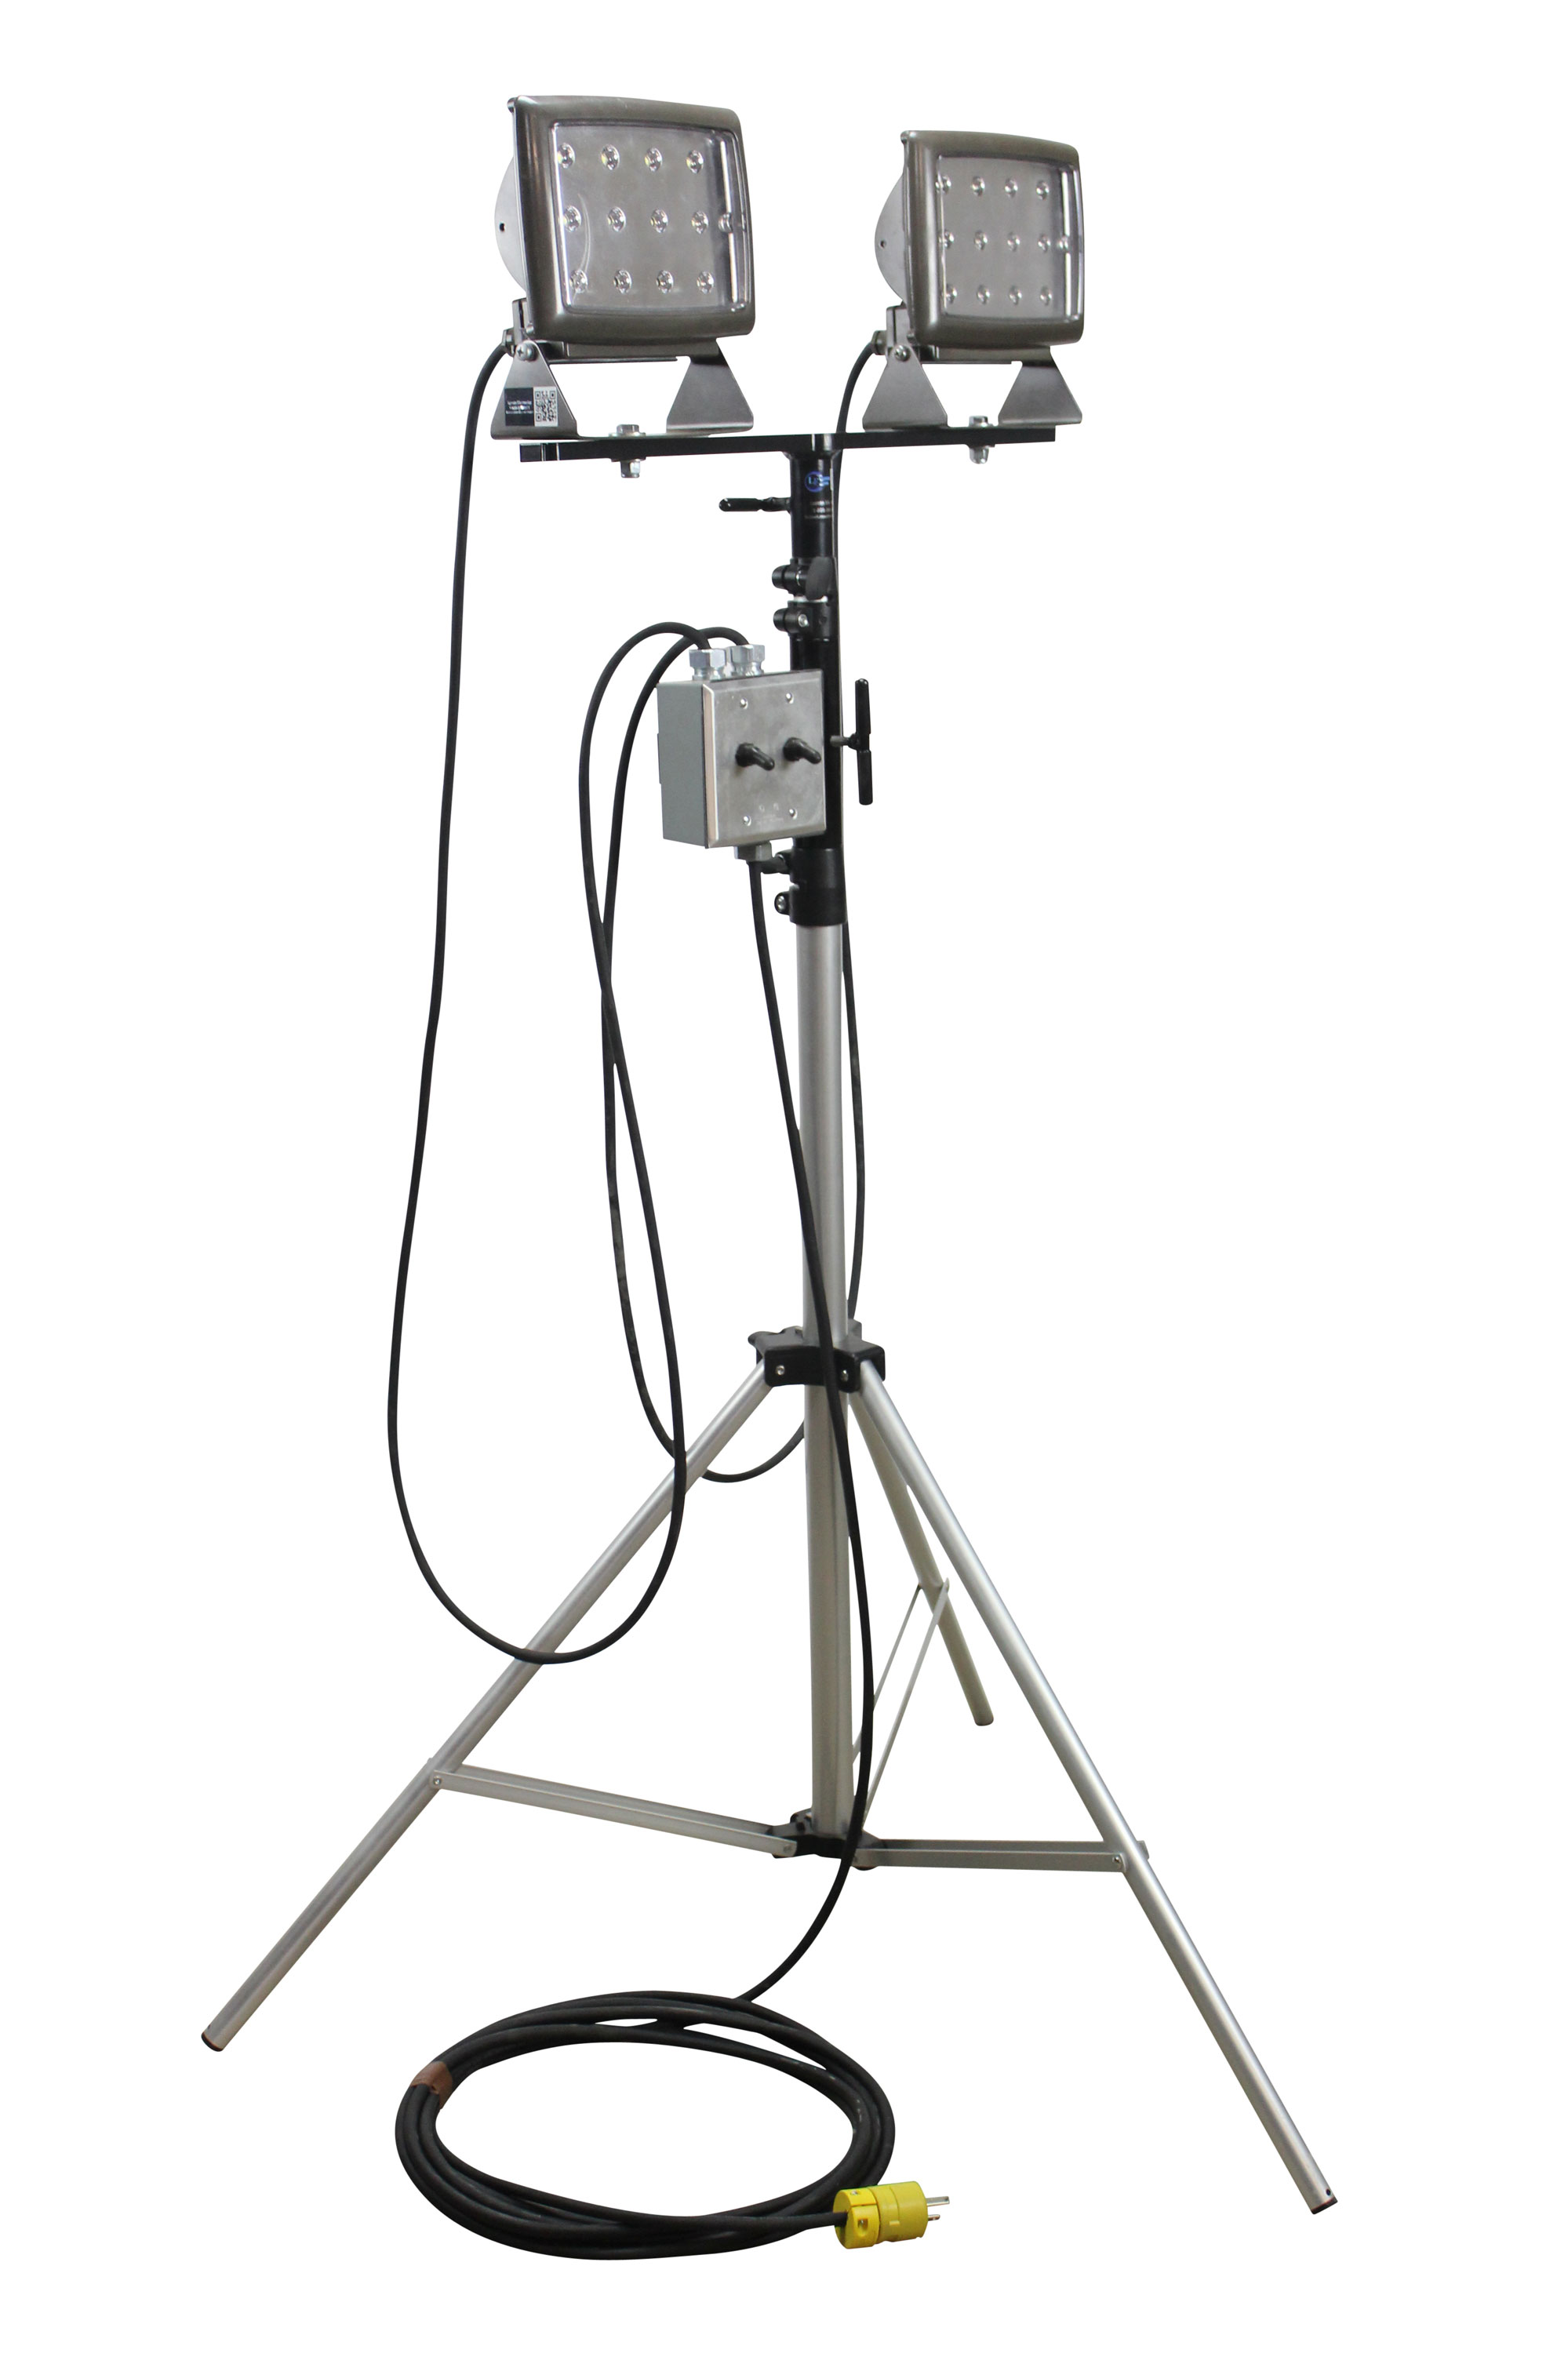 Larson Electronics Releases Portable Led Flood Light On Telescoping Tripod